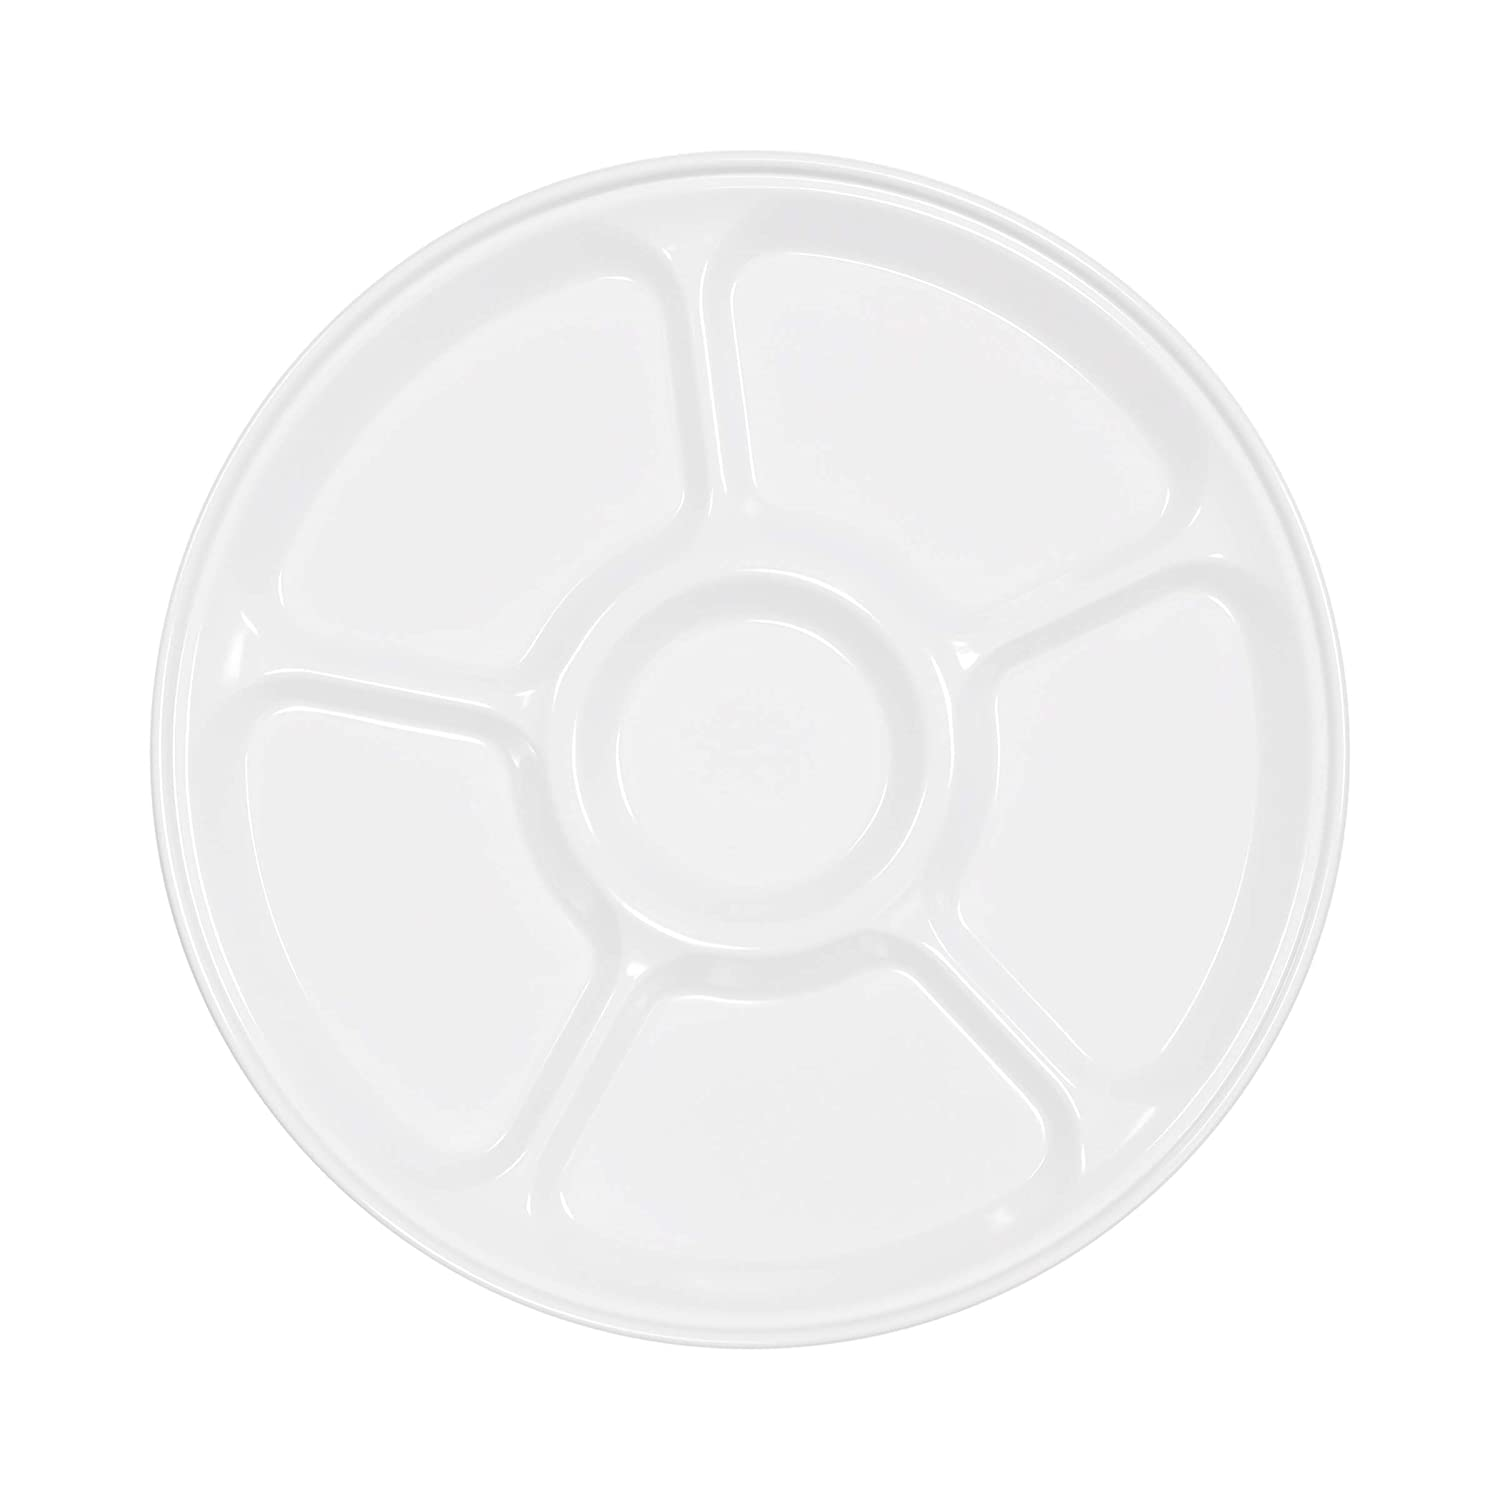 Elite Global Solutions M12P6-W Six Compartment Tray, 12Dia. x 3/4 h, Melamine, White (Pack of 4)